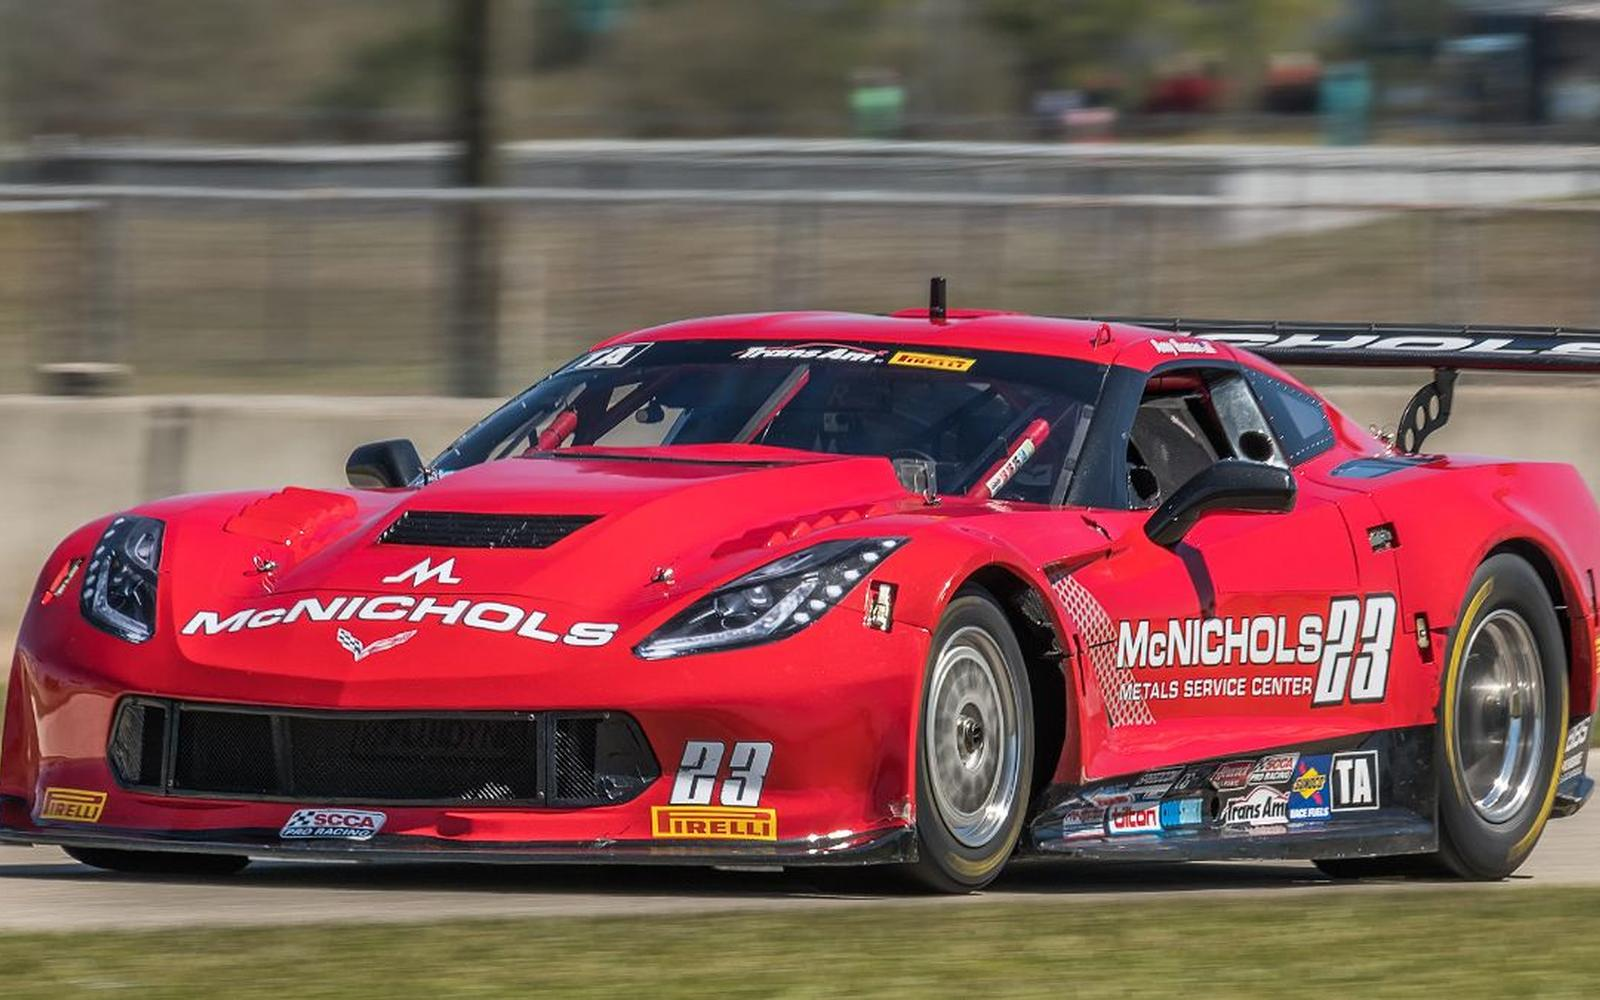 Ruman Places 5th in Trans Am Season Opener at Sebring